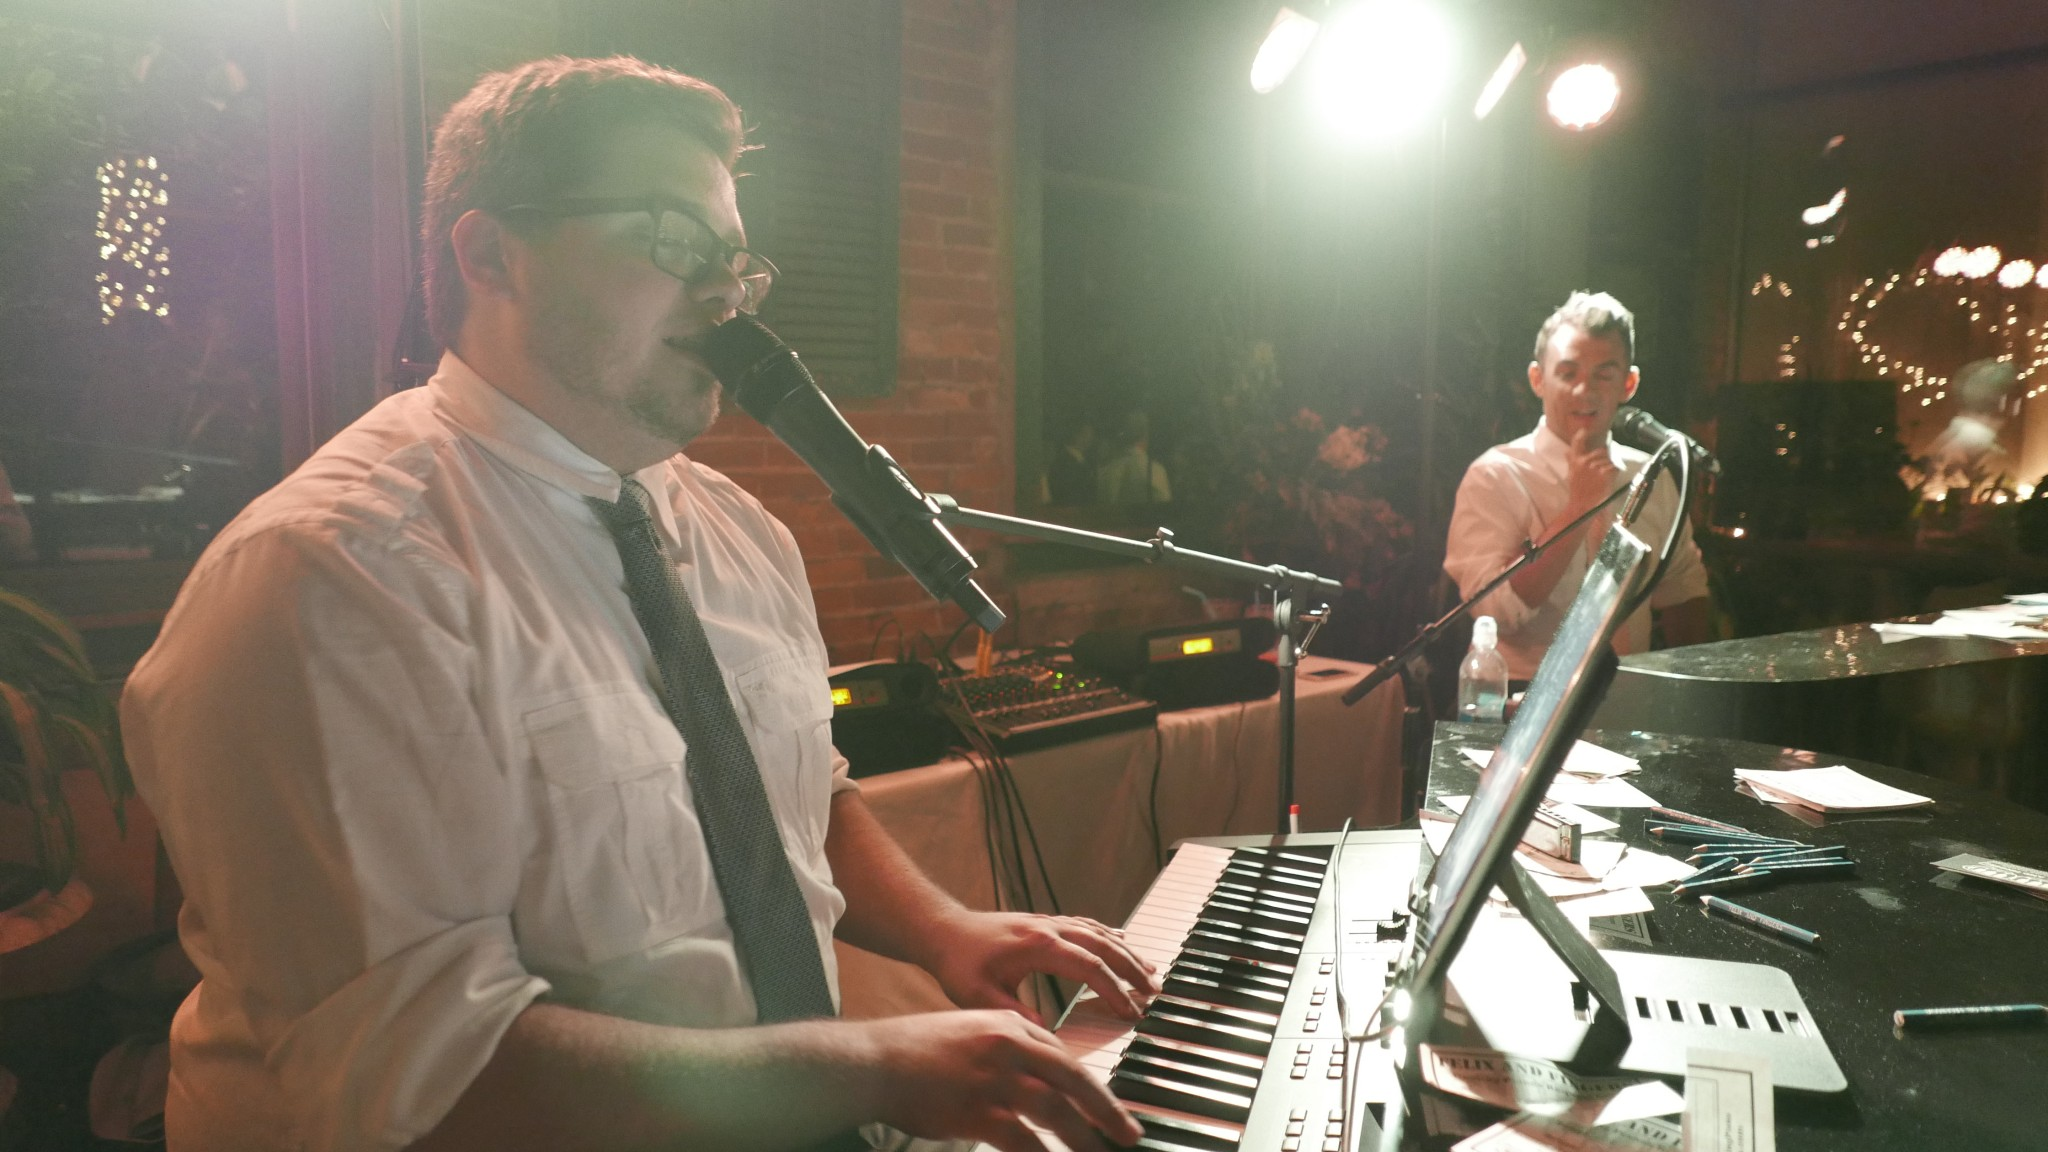 Win a free wedding from Felix and Fingers Dueling Pianos!